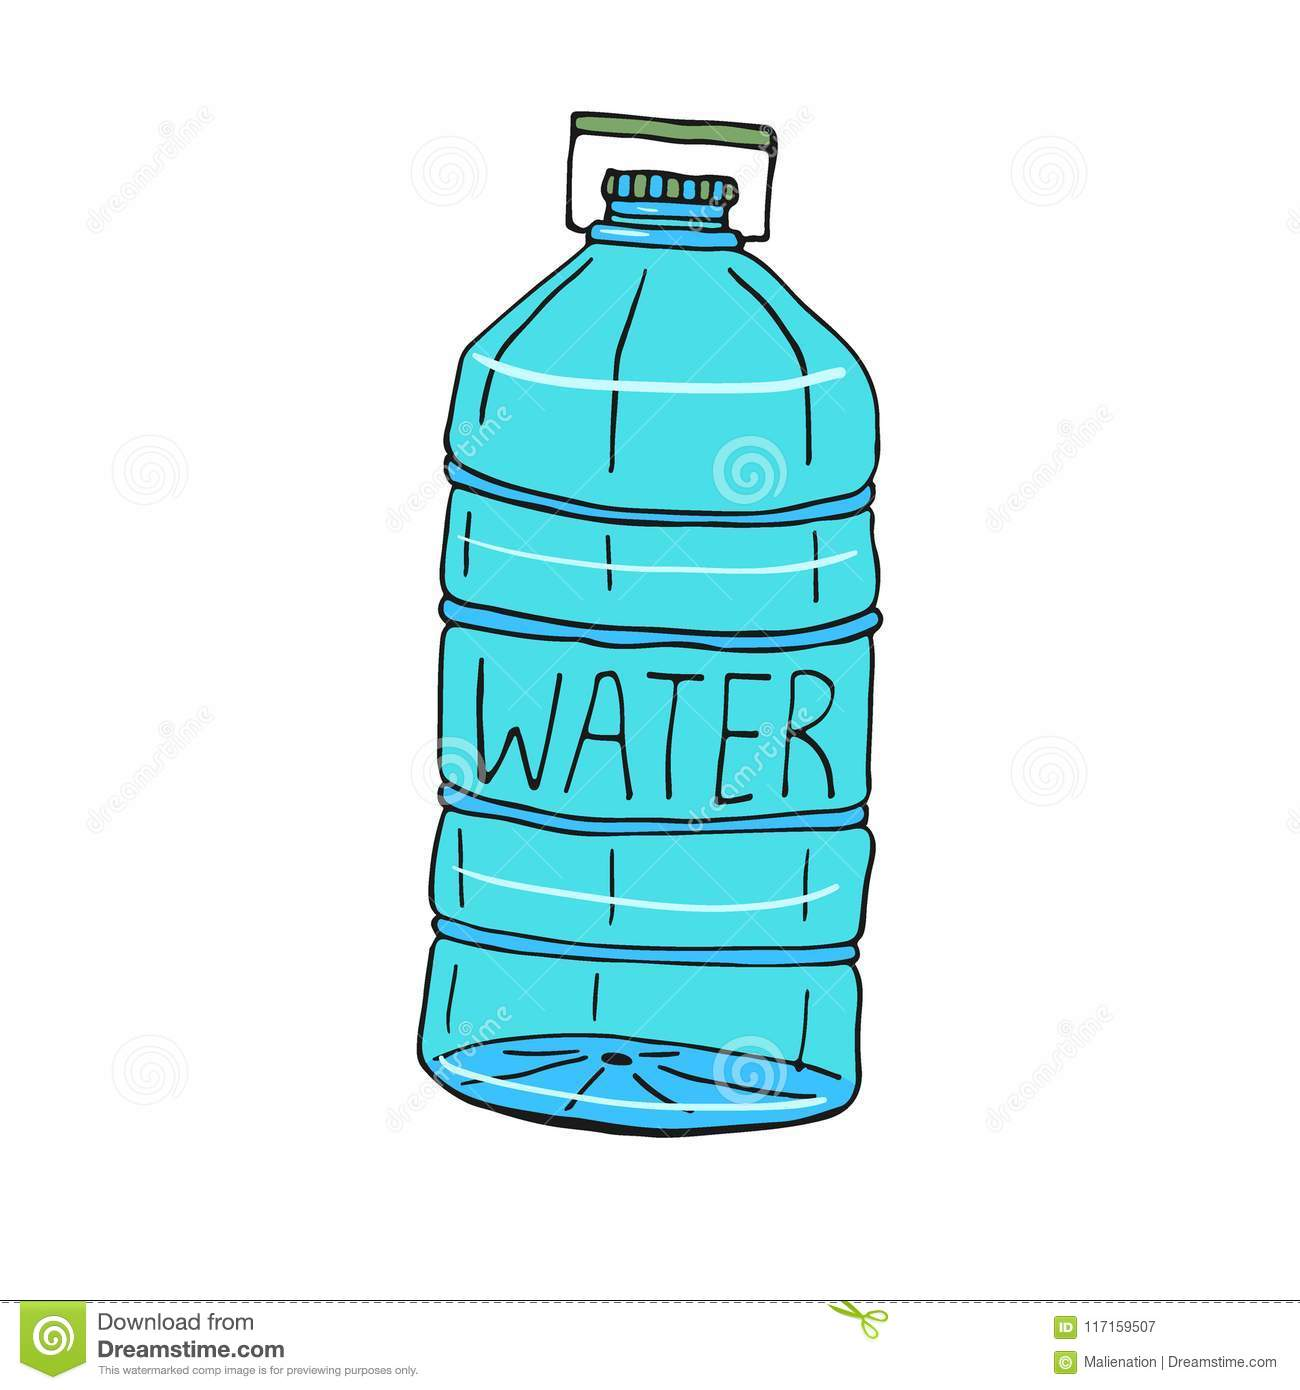 Water bottle illustration hand drawn icon vector design